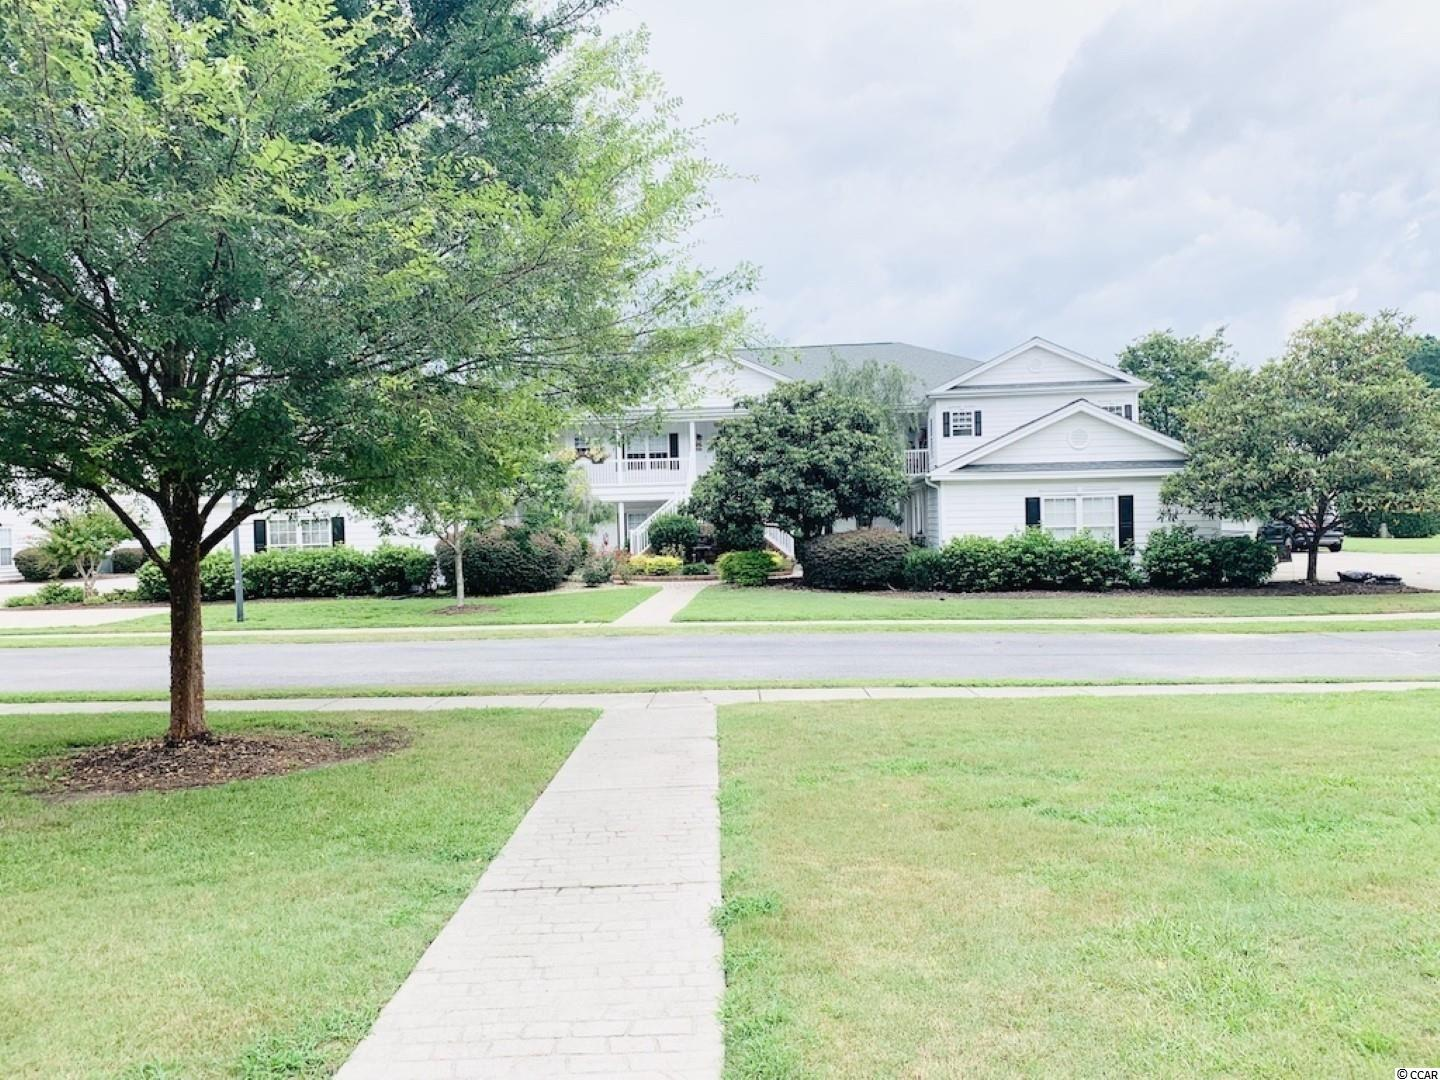 Spacious second floor condo with many special features! The 9 foot ceilings, open floor plan, walk-in closets, wood cabinets, updated appliances, and a dedicated laundry room make this condo exceptional. The bright, open floor plan and split bedroom arrangement works equally well as a full time residence or vacation home. The large screened porch spans 30+ feet along the back, has floor to ceiling storm windows, and overlooks the beautiful lake fountains. There is also a one car garage with storage and a separate parking space. The Fountains is a private gated community; the amenities include an outdoor pool and open-air cabana with an outdoor kitchen. The location is convenient to golf, dining, shopping, Tanger Outlets, Conway Medical Center, and entertainment. It's just an easy drive to the beaches too! This  home is in immaculate, move in condition and ready to enjoy! Square footage is approximate and not guaranteed. Buyer is responsible for verification.